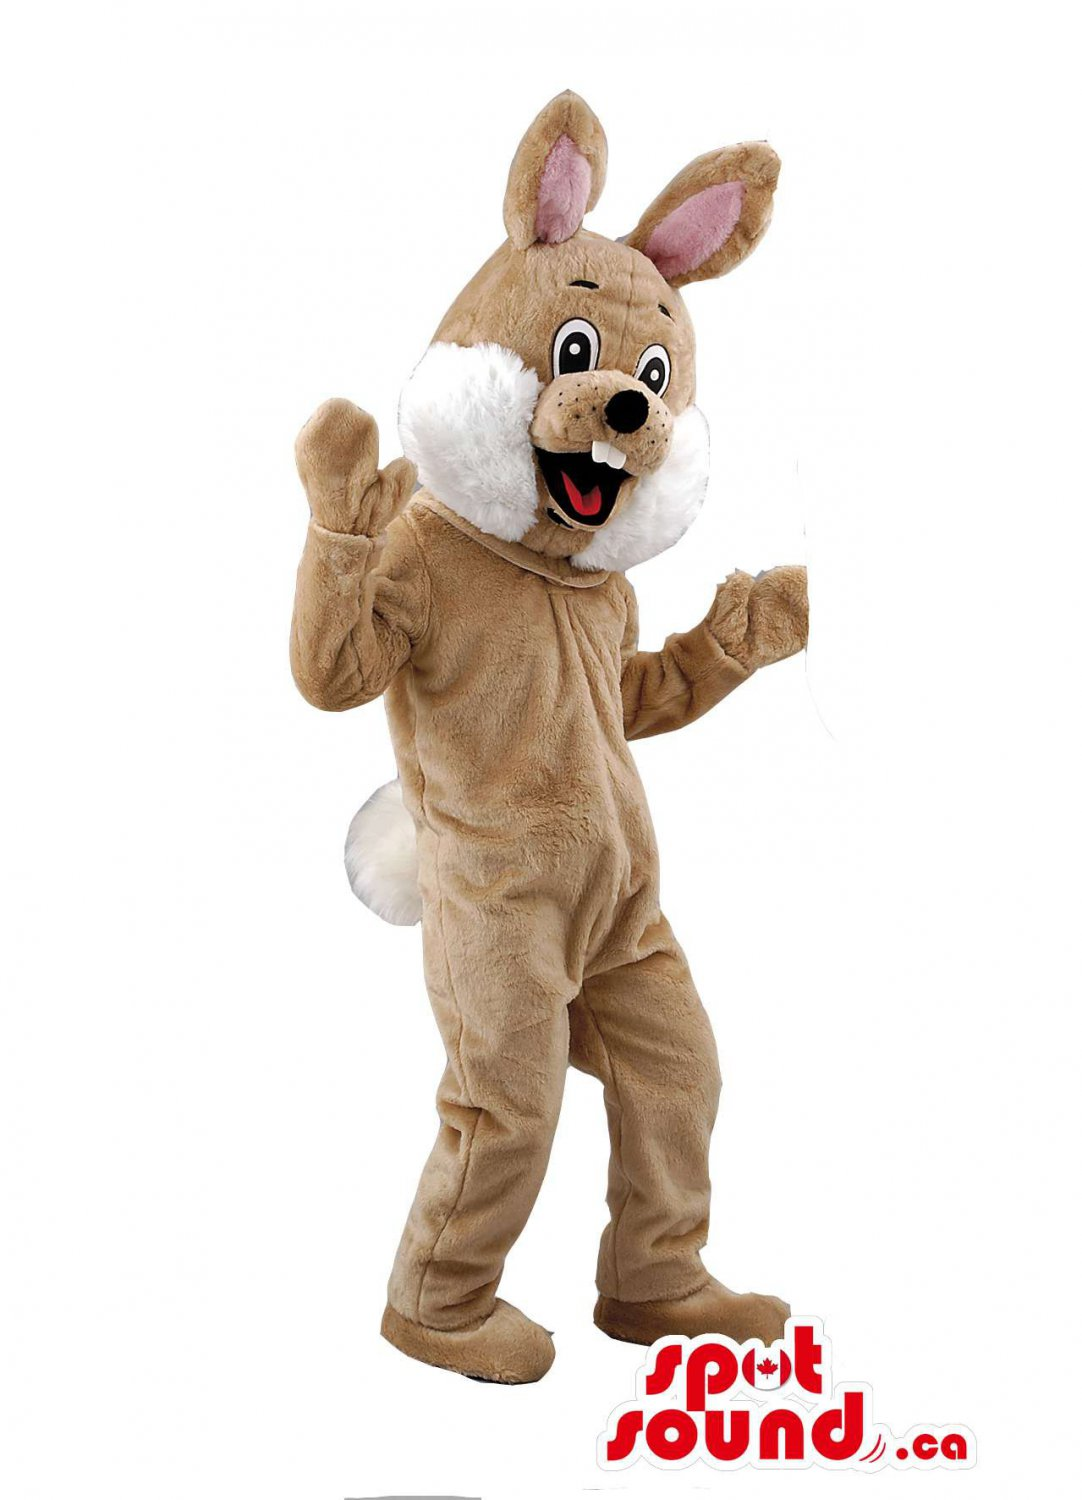 Brown Rabbit Mascot SpotSound Canada With Teeth And With A Round Tail